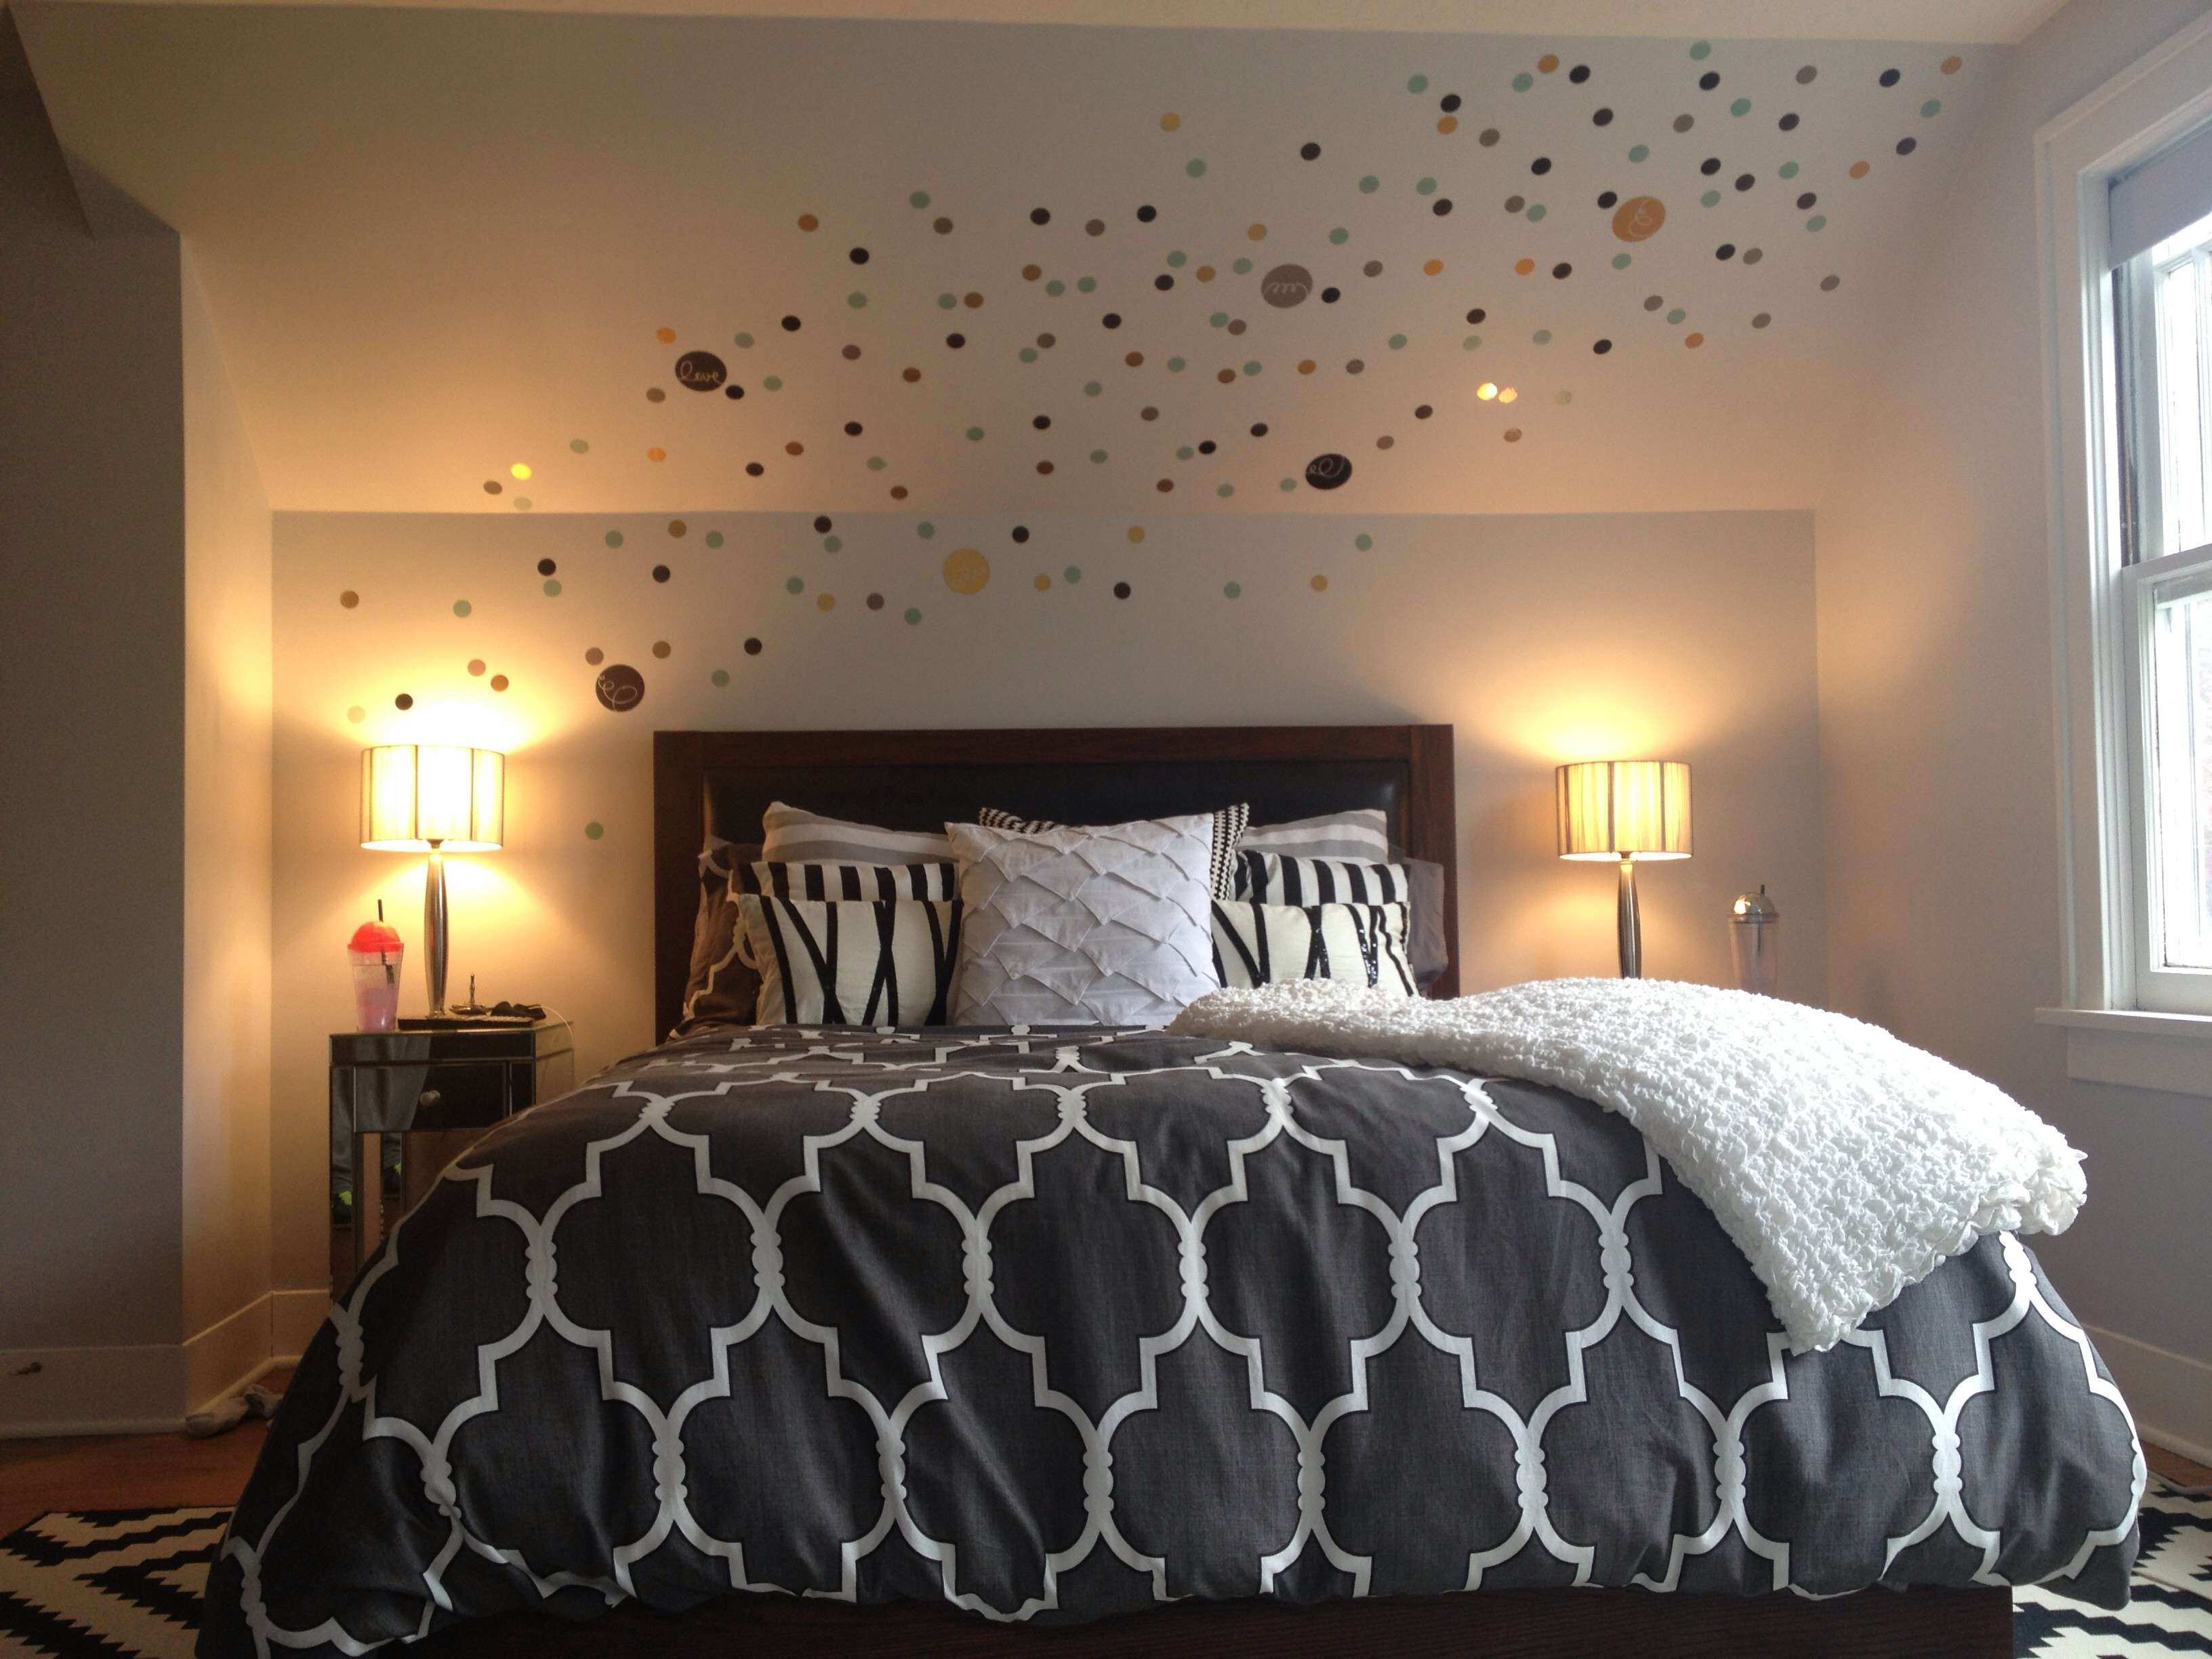 Wall Decor for Bedroom Inspirational Awesome Master Bedroom Wall Decor Ideas Bedroom Decor